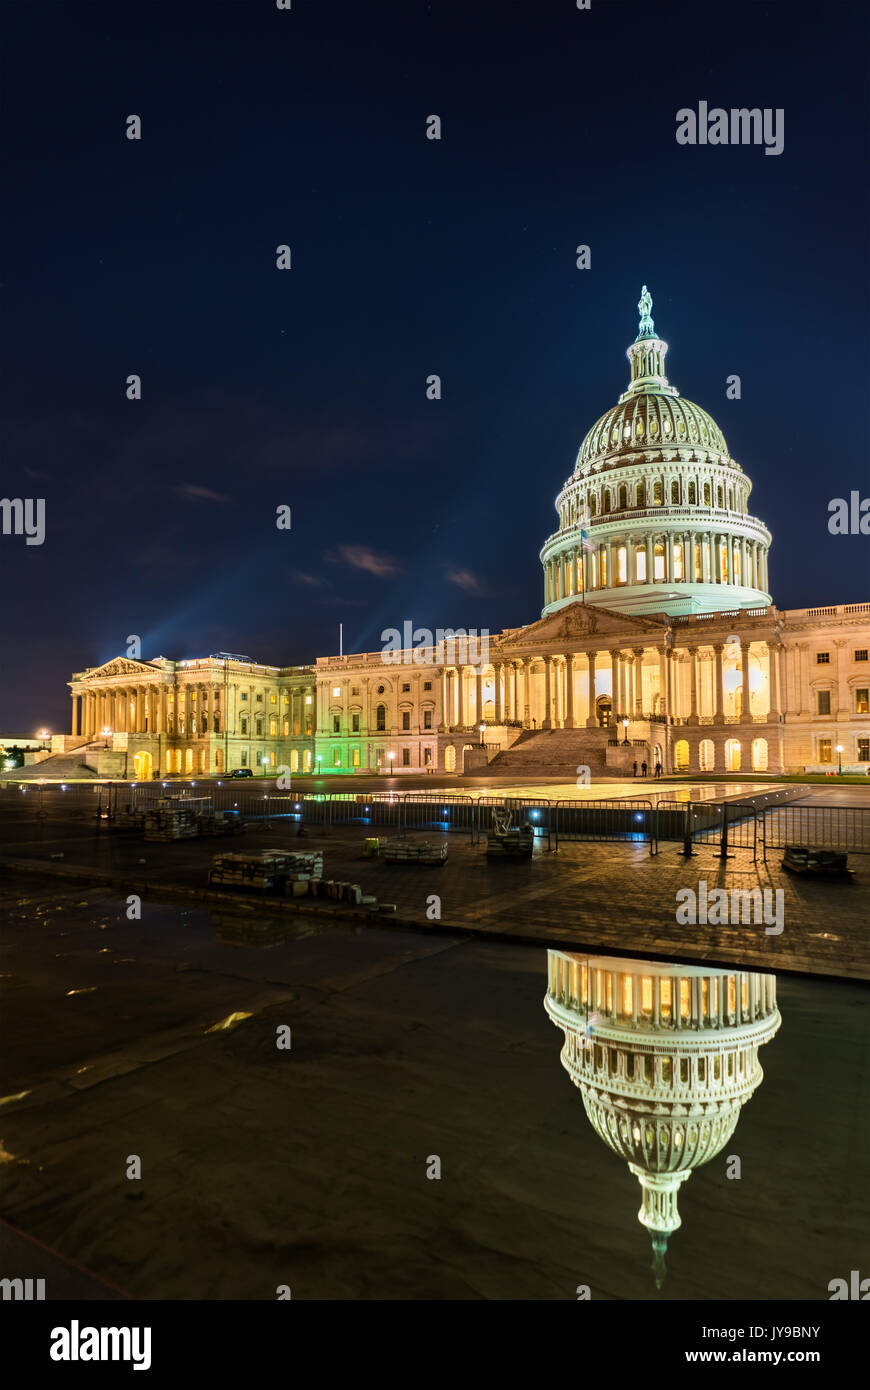 La United States Capitol Building di notte in Washington, DC Immagini Stock